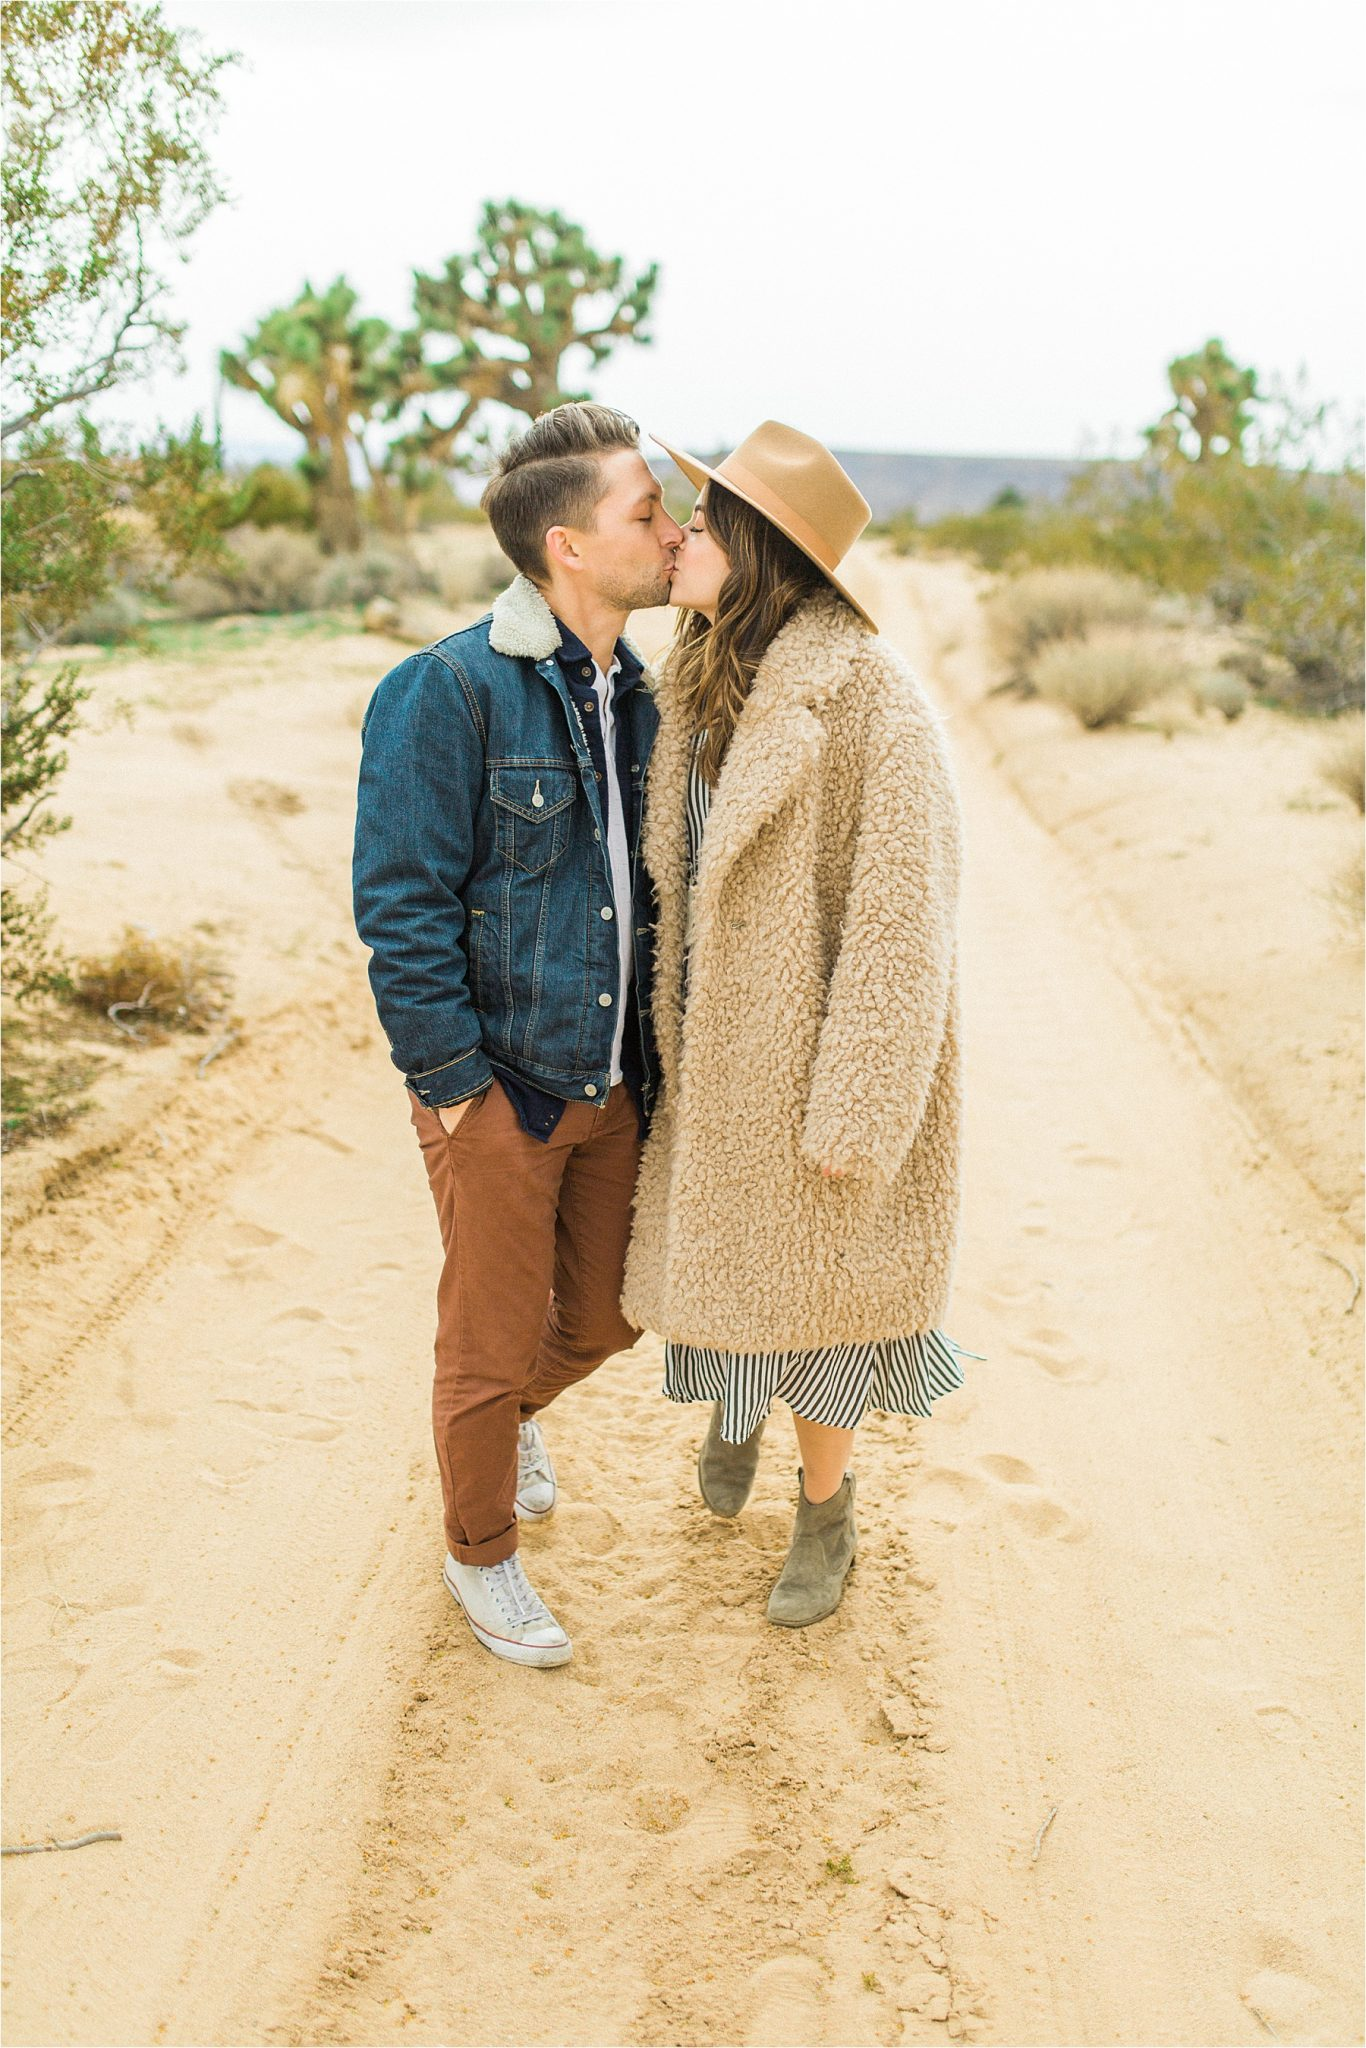 Yucca Valley Glamping Engagement Photos, Yucca Valley Engagement Photographer, Sarah Ellefson Photography, Yucca Valley Photoshoot, Yucca Valley Engagement Photos, Yucca Valley Wedding, California Desert Engagement Photos, Yucca Valley California Palm Springs